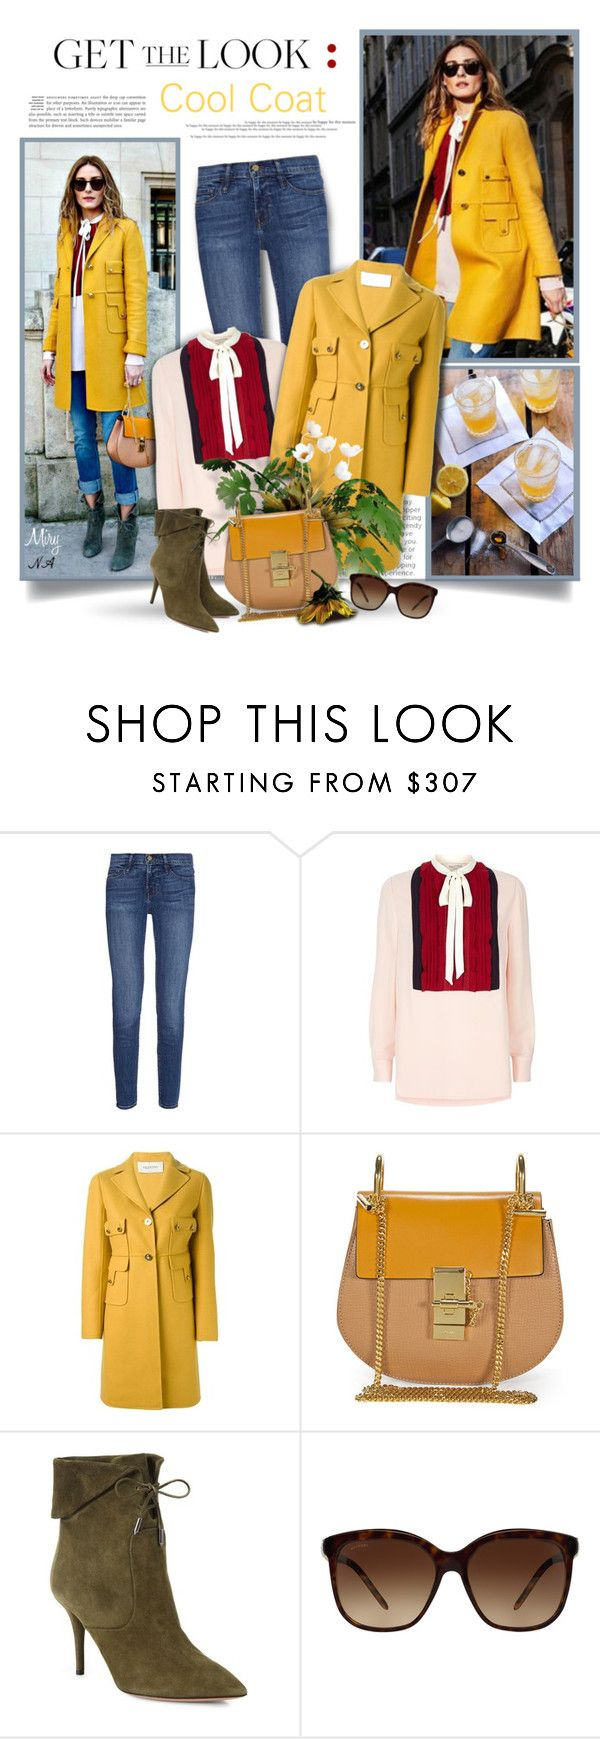 """Get the Look: Cool Coats"" by thewondersoffashion ❤ liked on Polyvore featuring Frame Denim, Valentino, Chloé, Aquazzura and Bulgari"